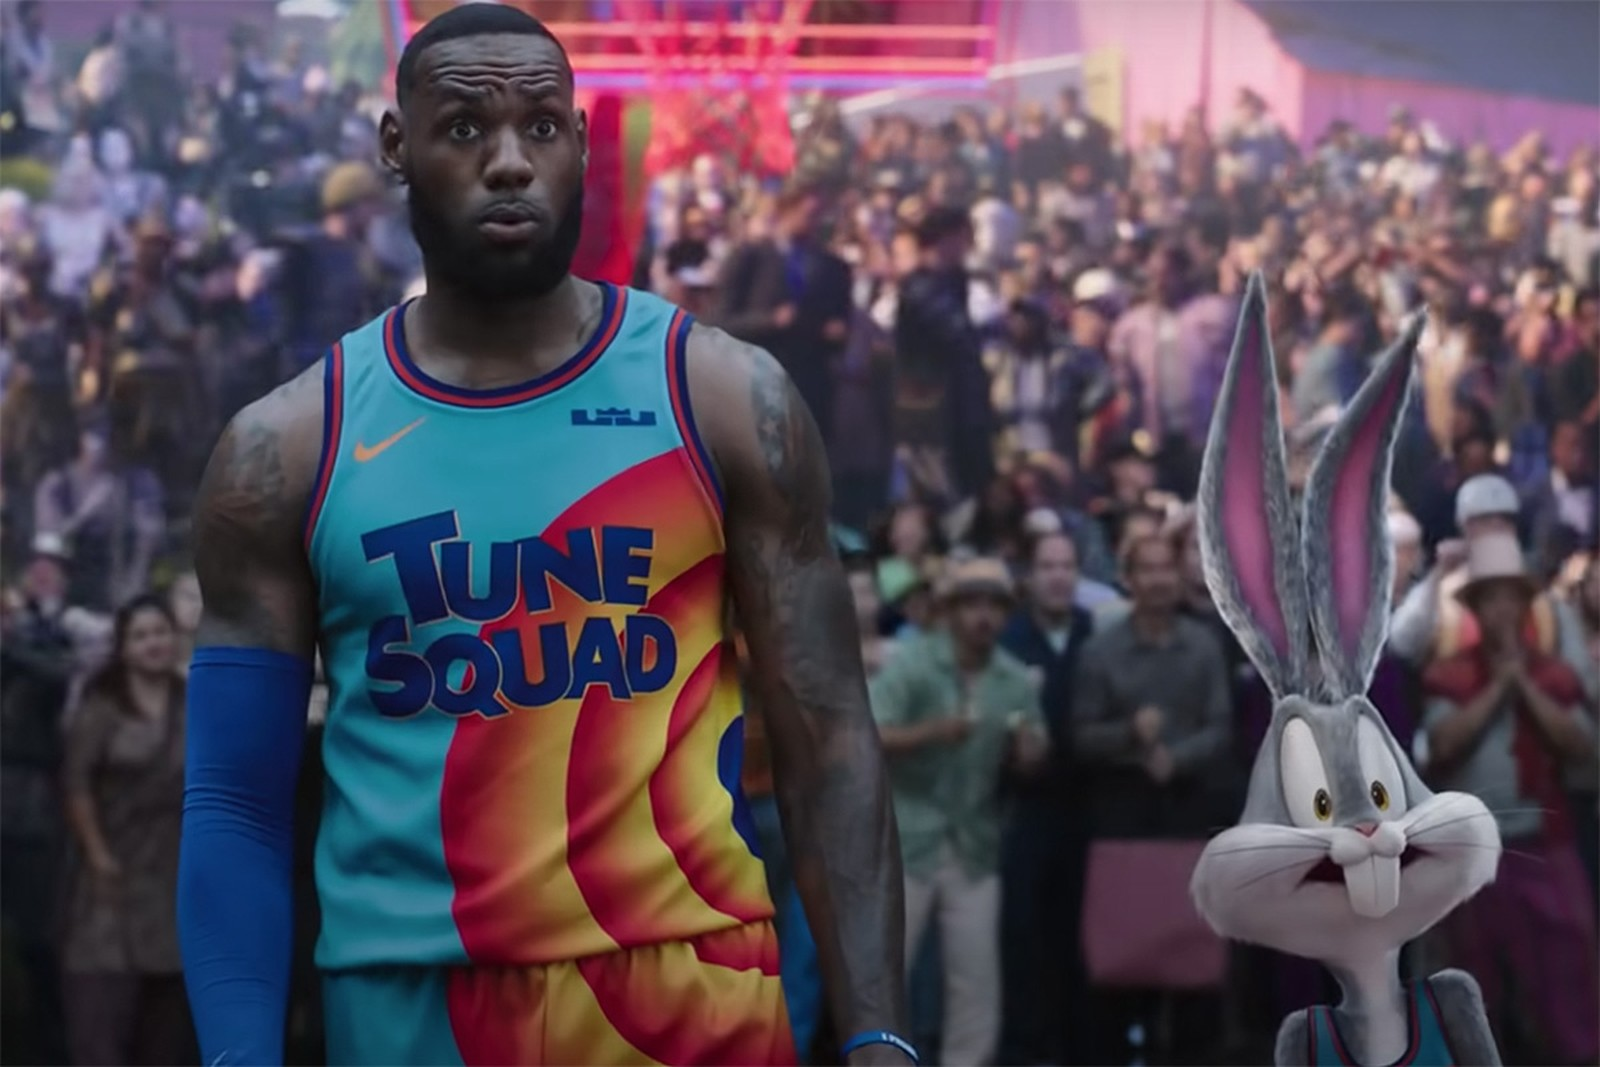 The King wins again as Space Jam: A New Legacy tops the weekend box office